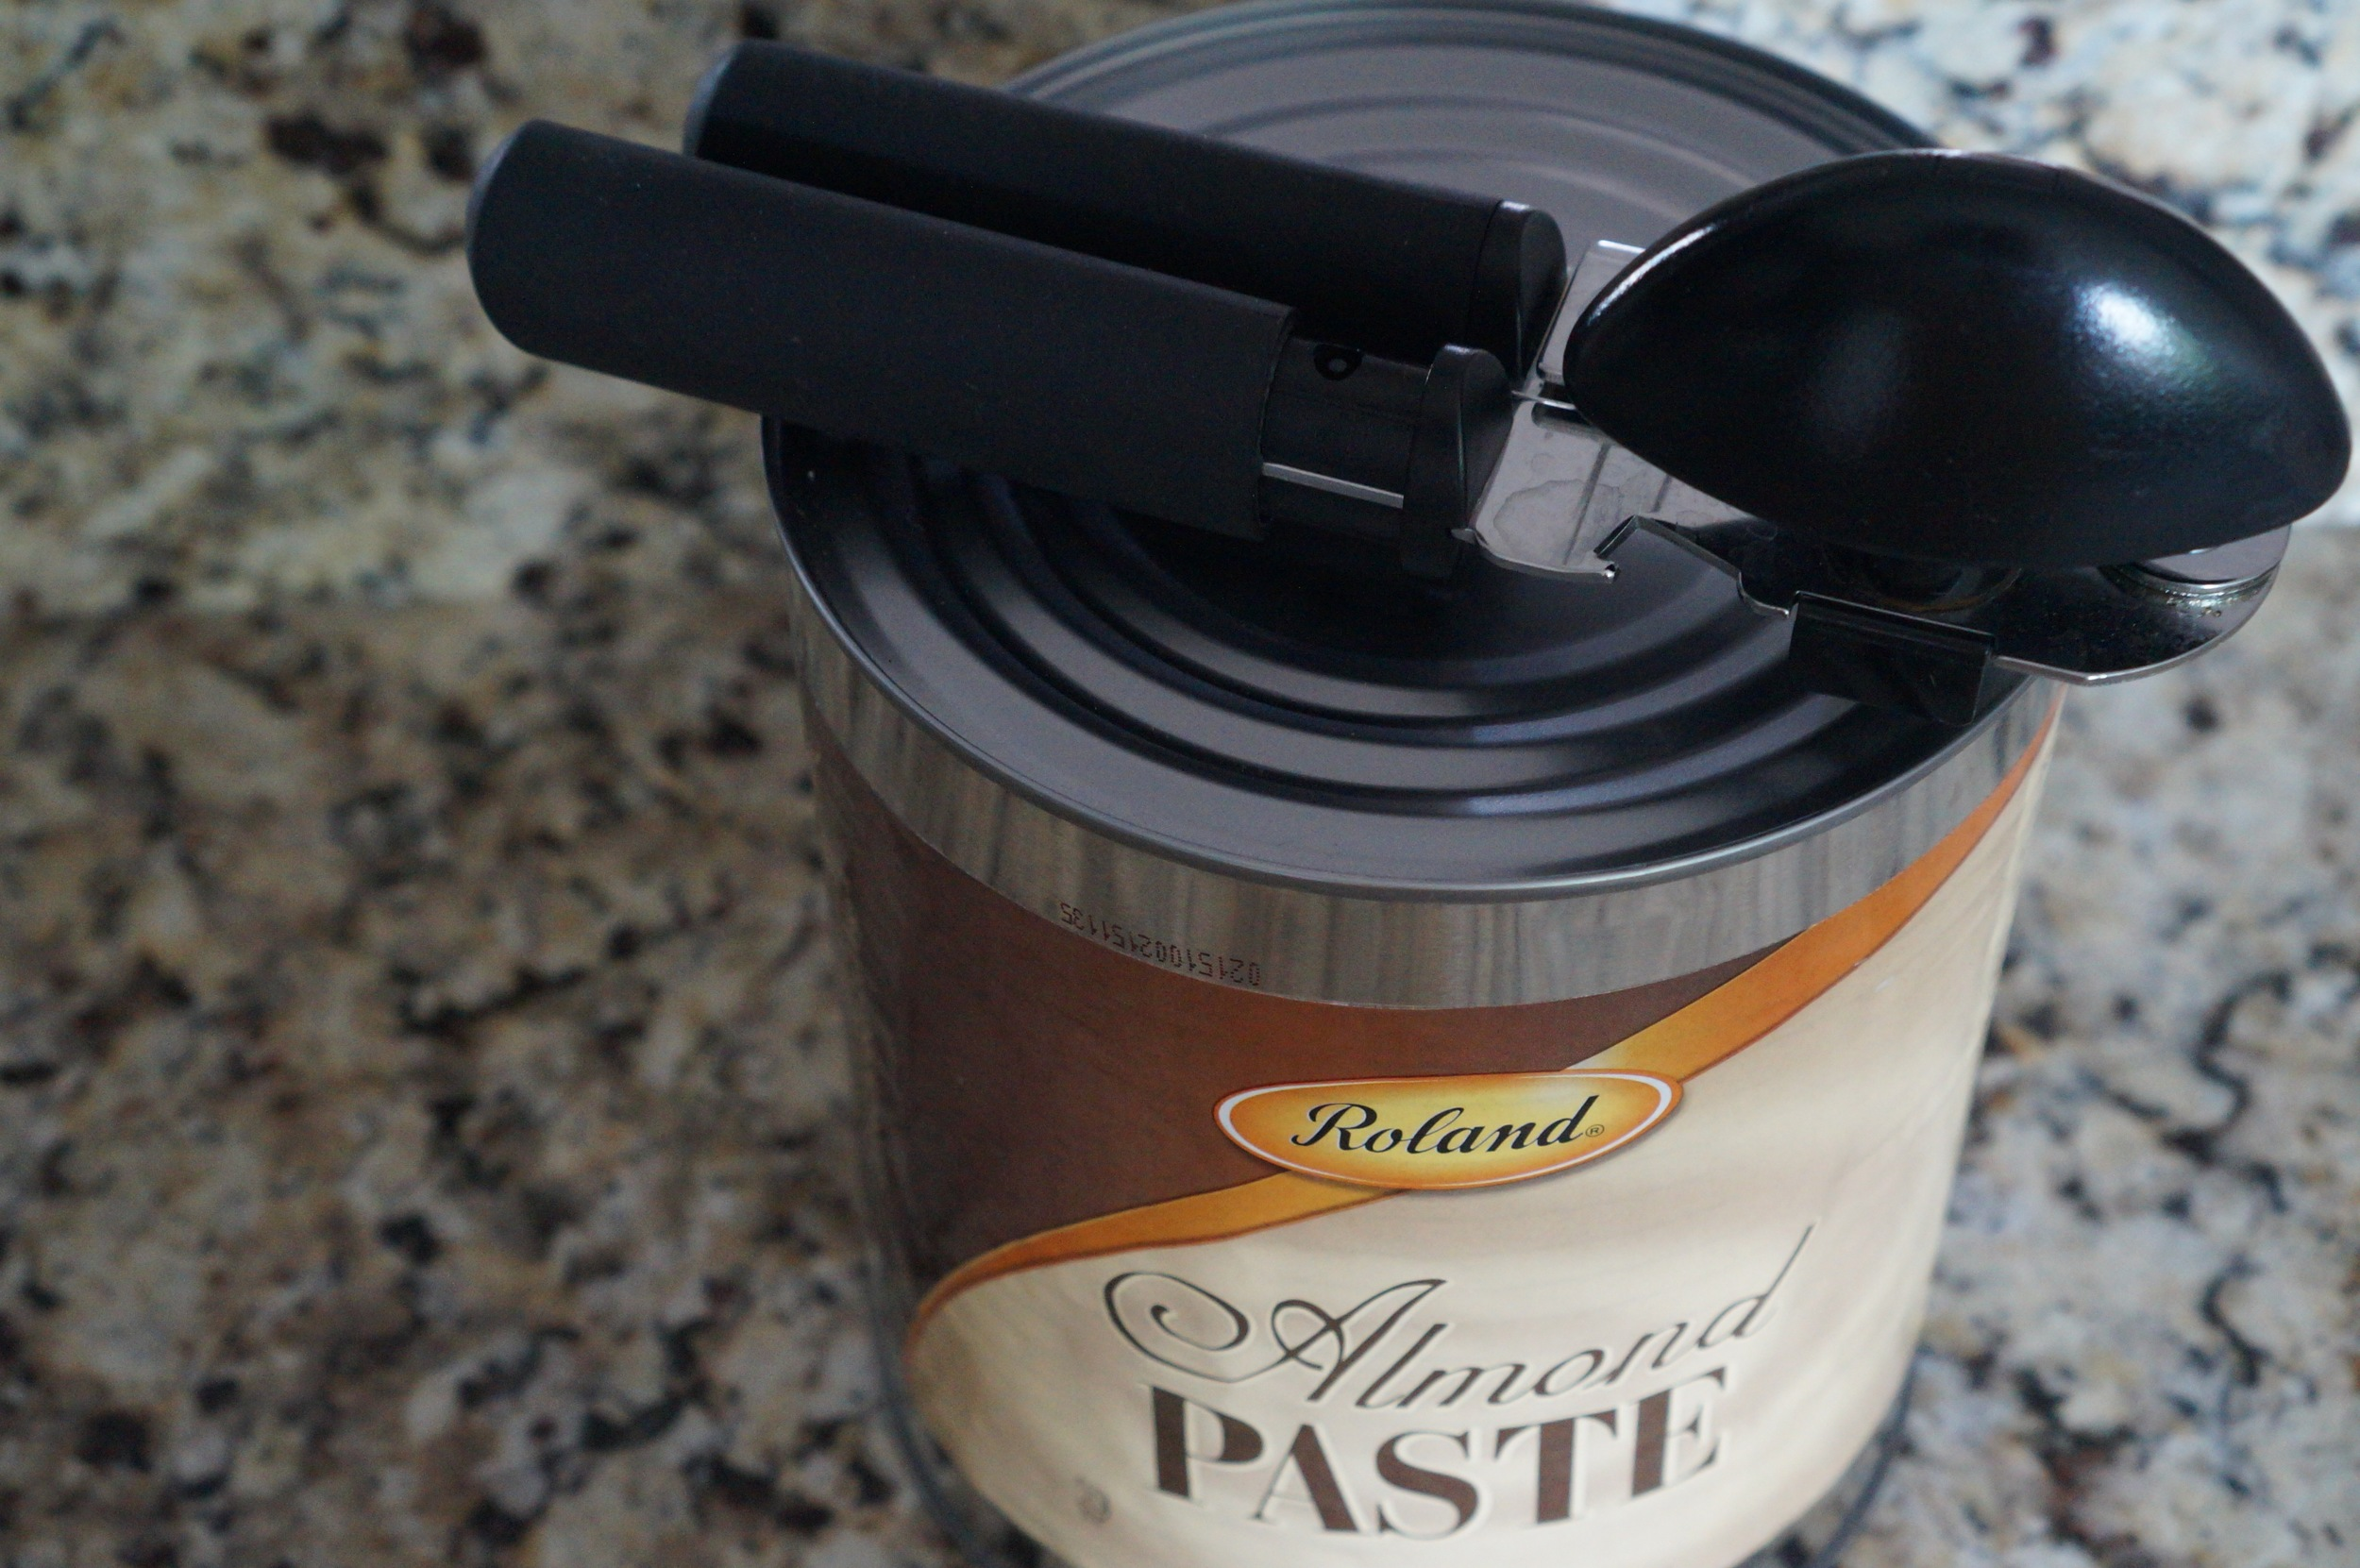 Enormous can of almond paste. Regular-sized can opener for scale.